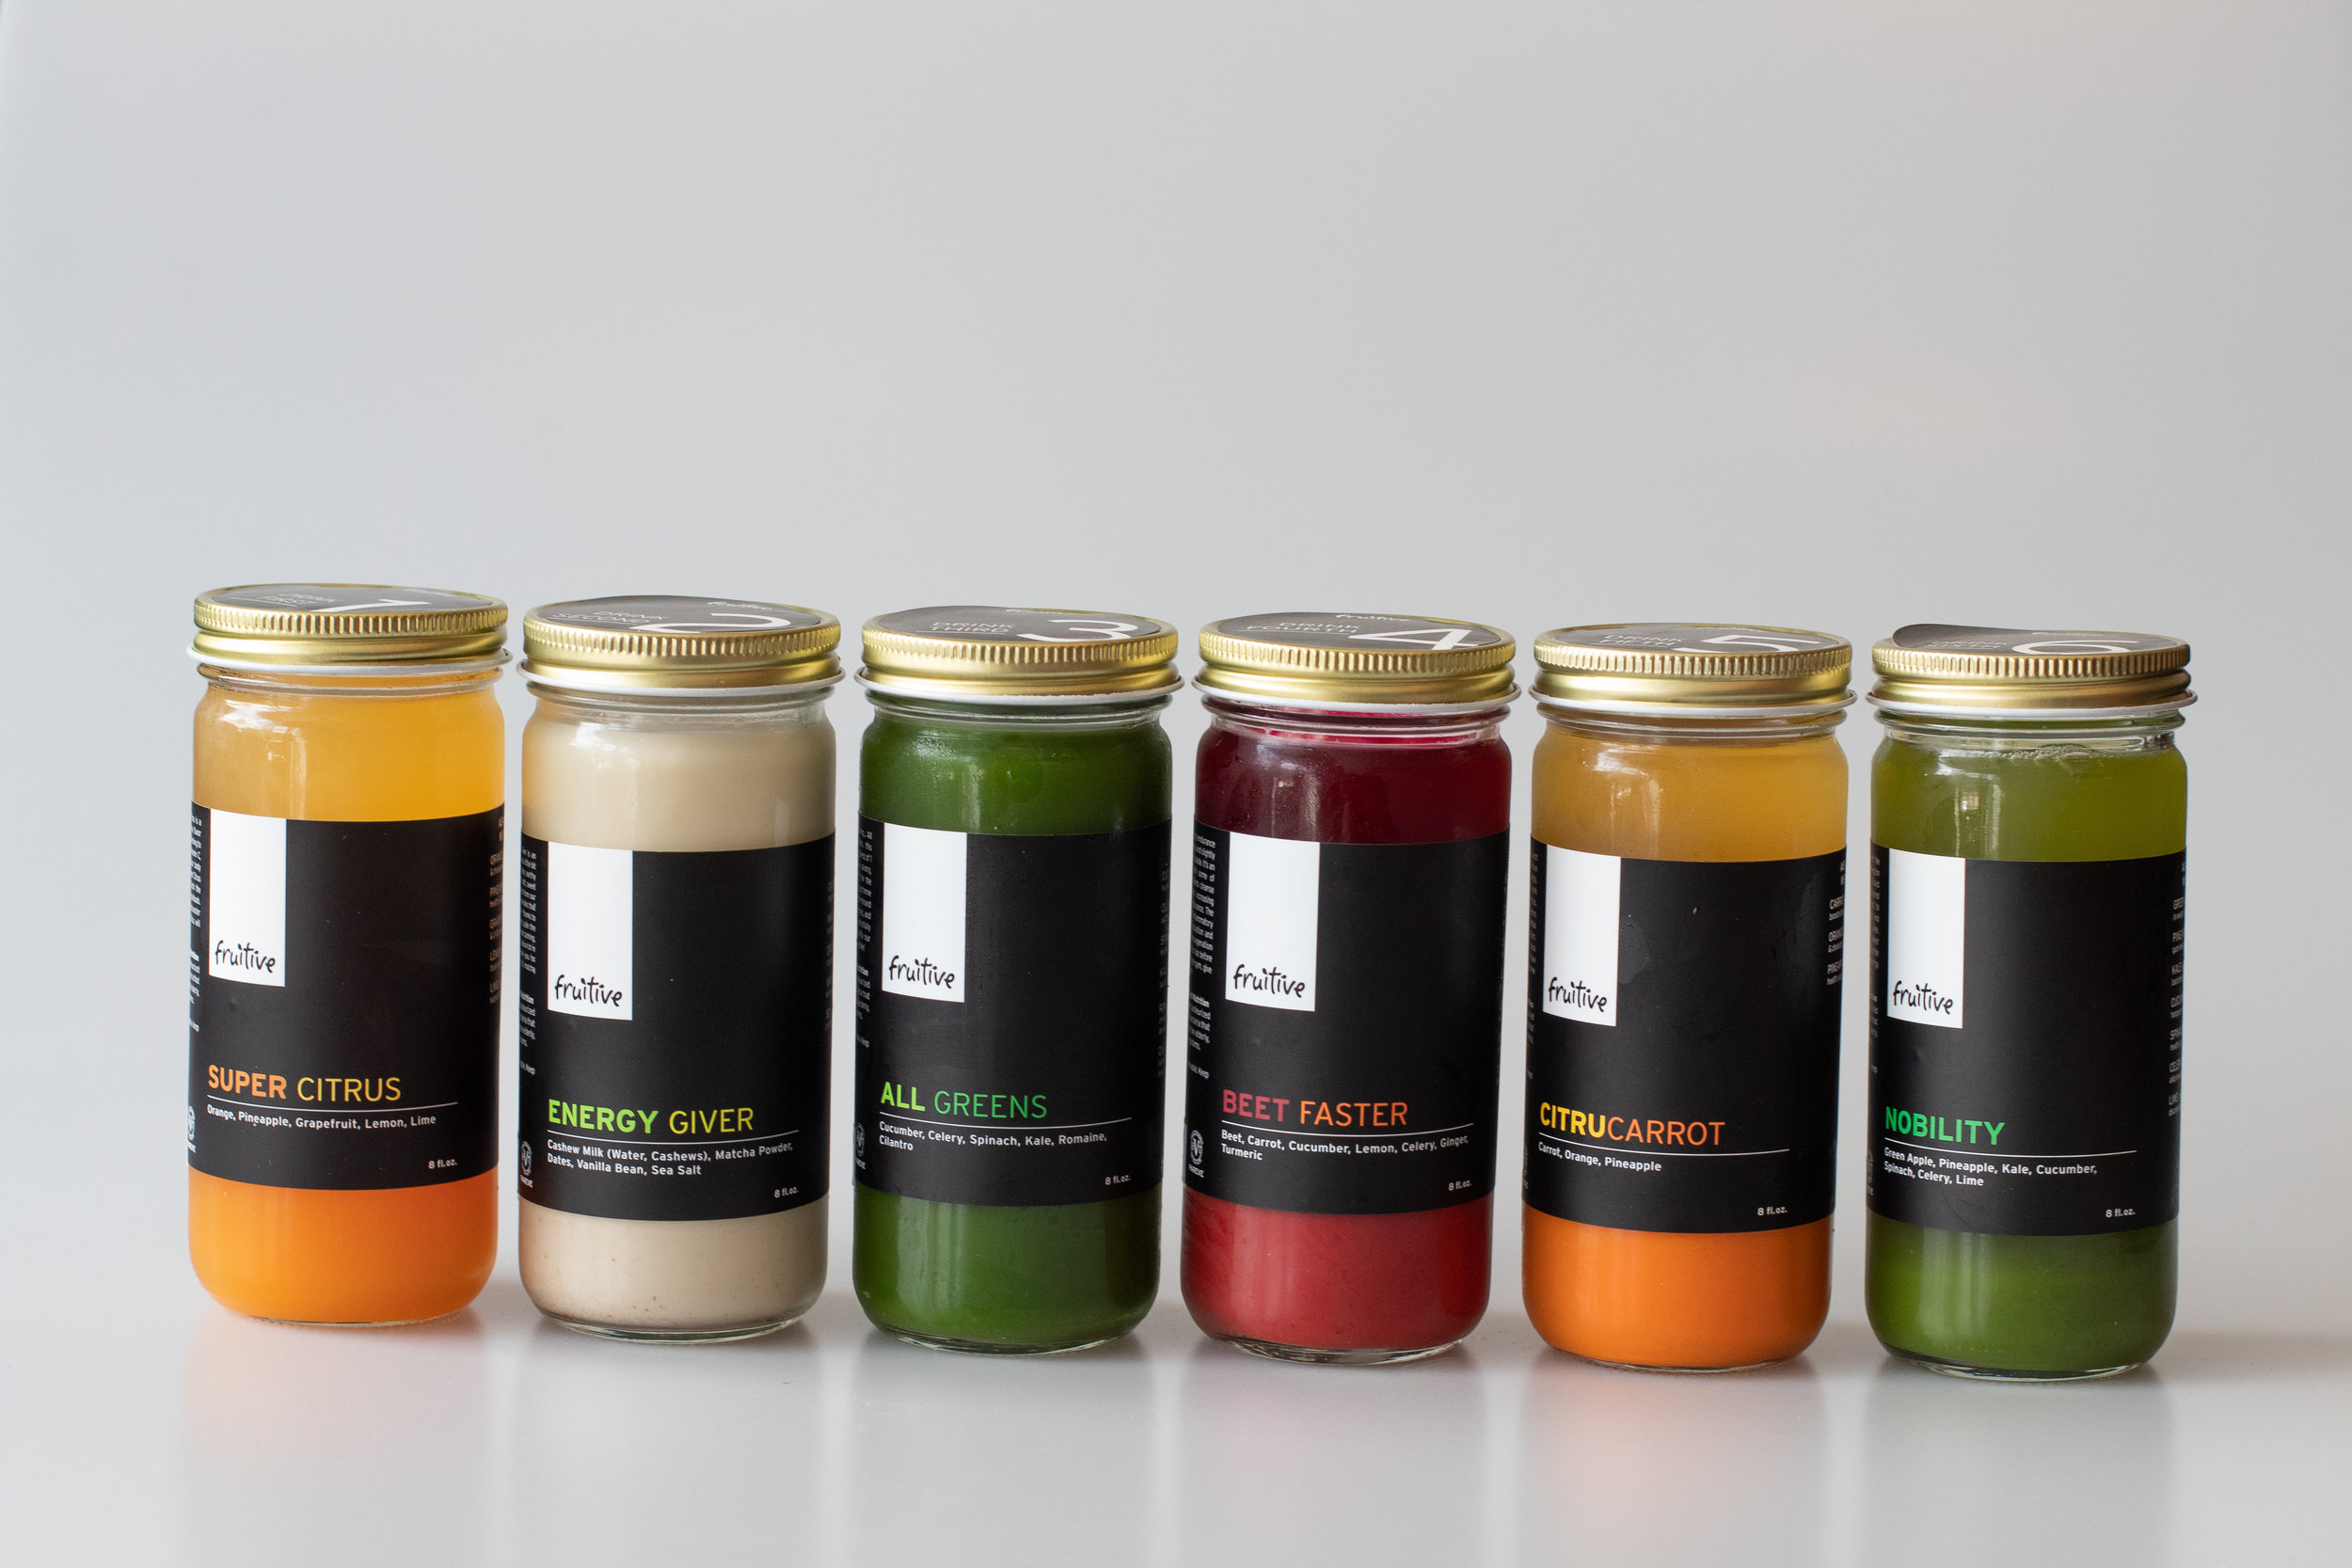 SUSTAINABLE - Fruitive bottles all of its cold-pressed juices in glass jars.